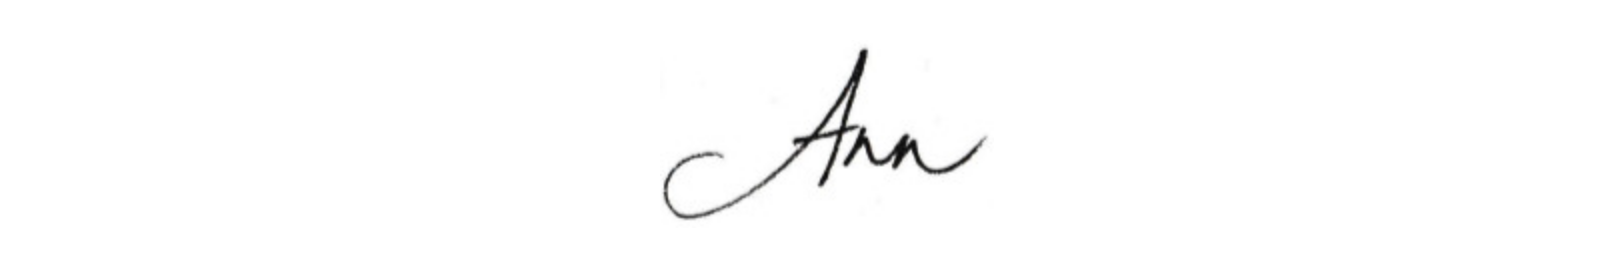 Ann signature white space either side.png